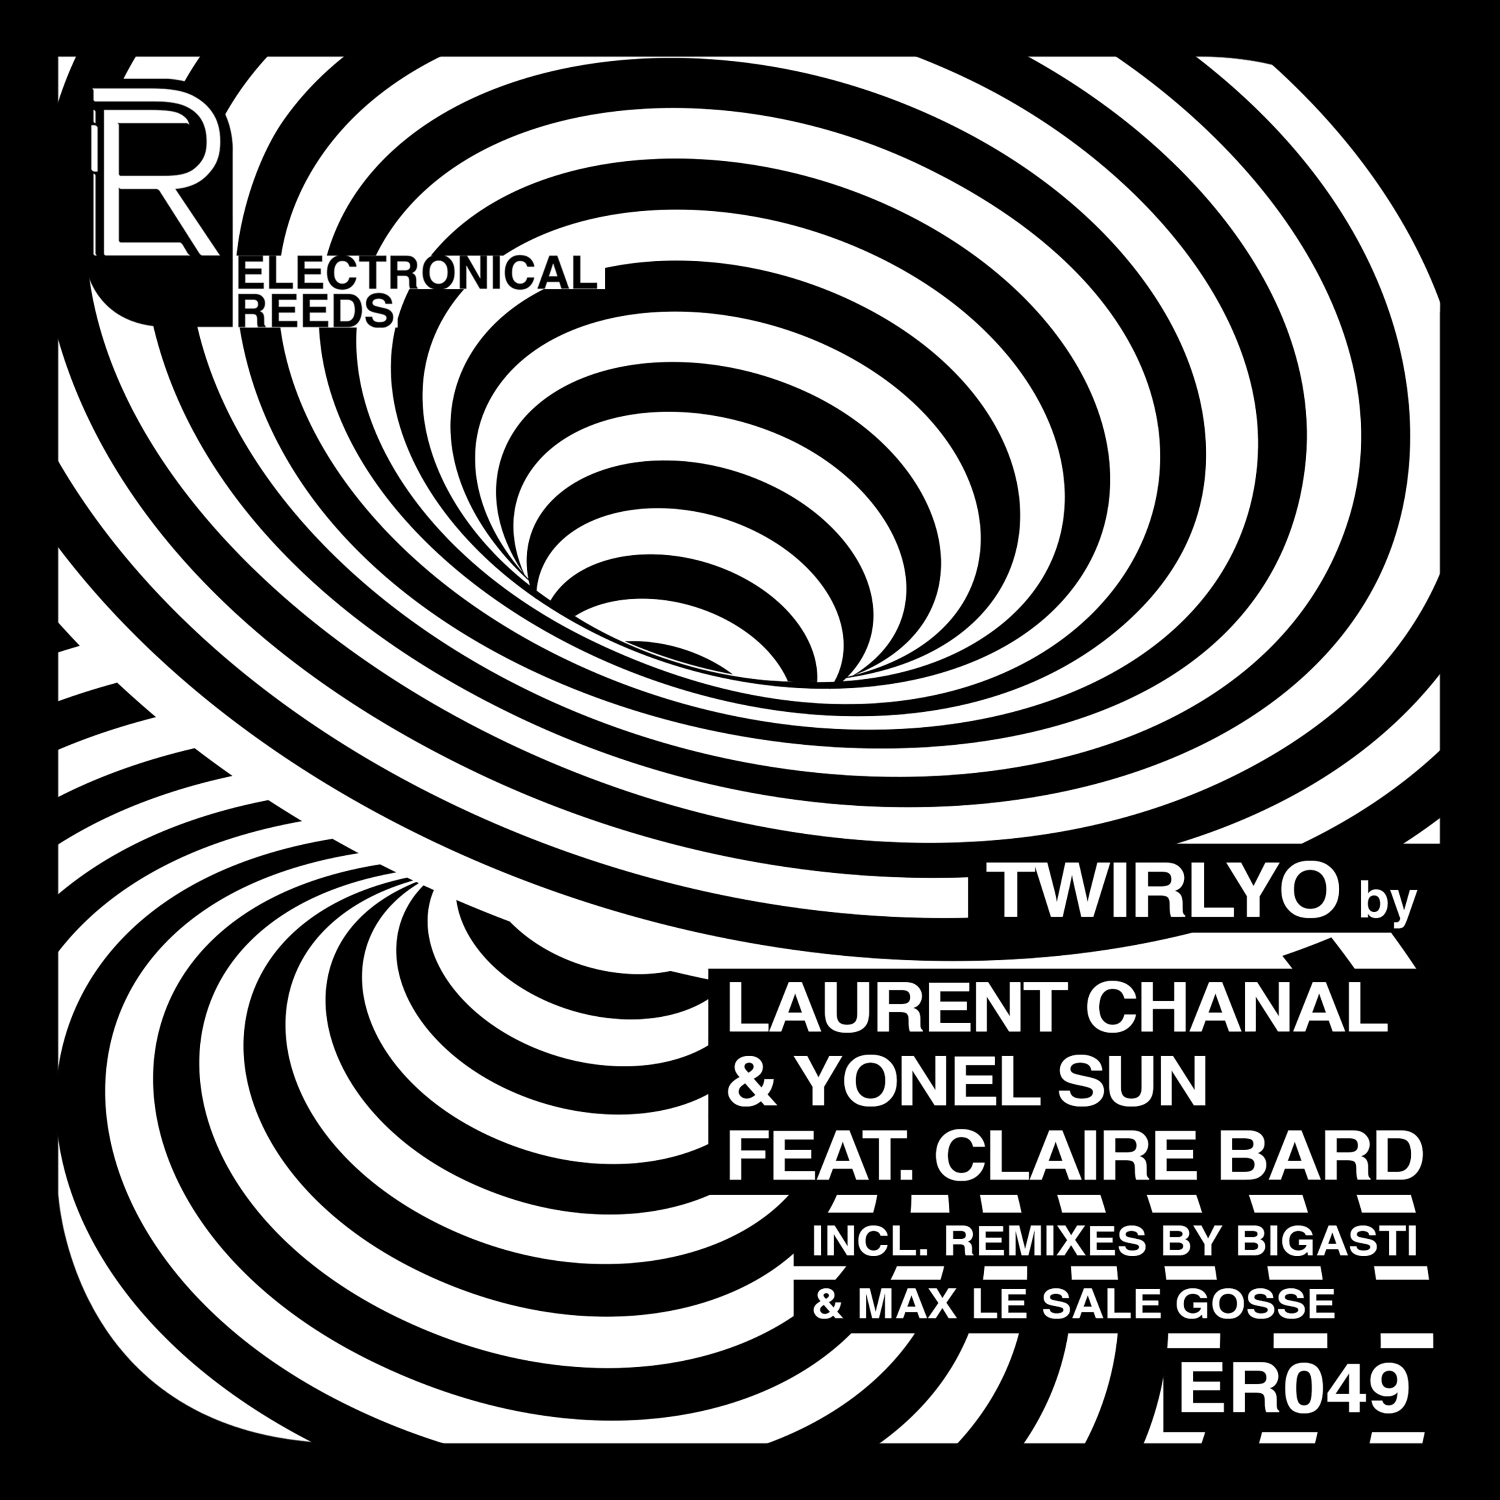 ER049 - Laurent Chanal & Yonel Sun - Twirlyo [feat. Claire Bard] EP